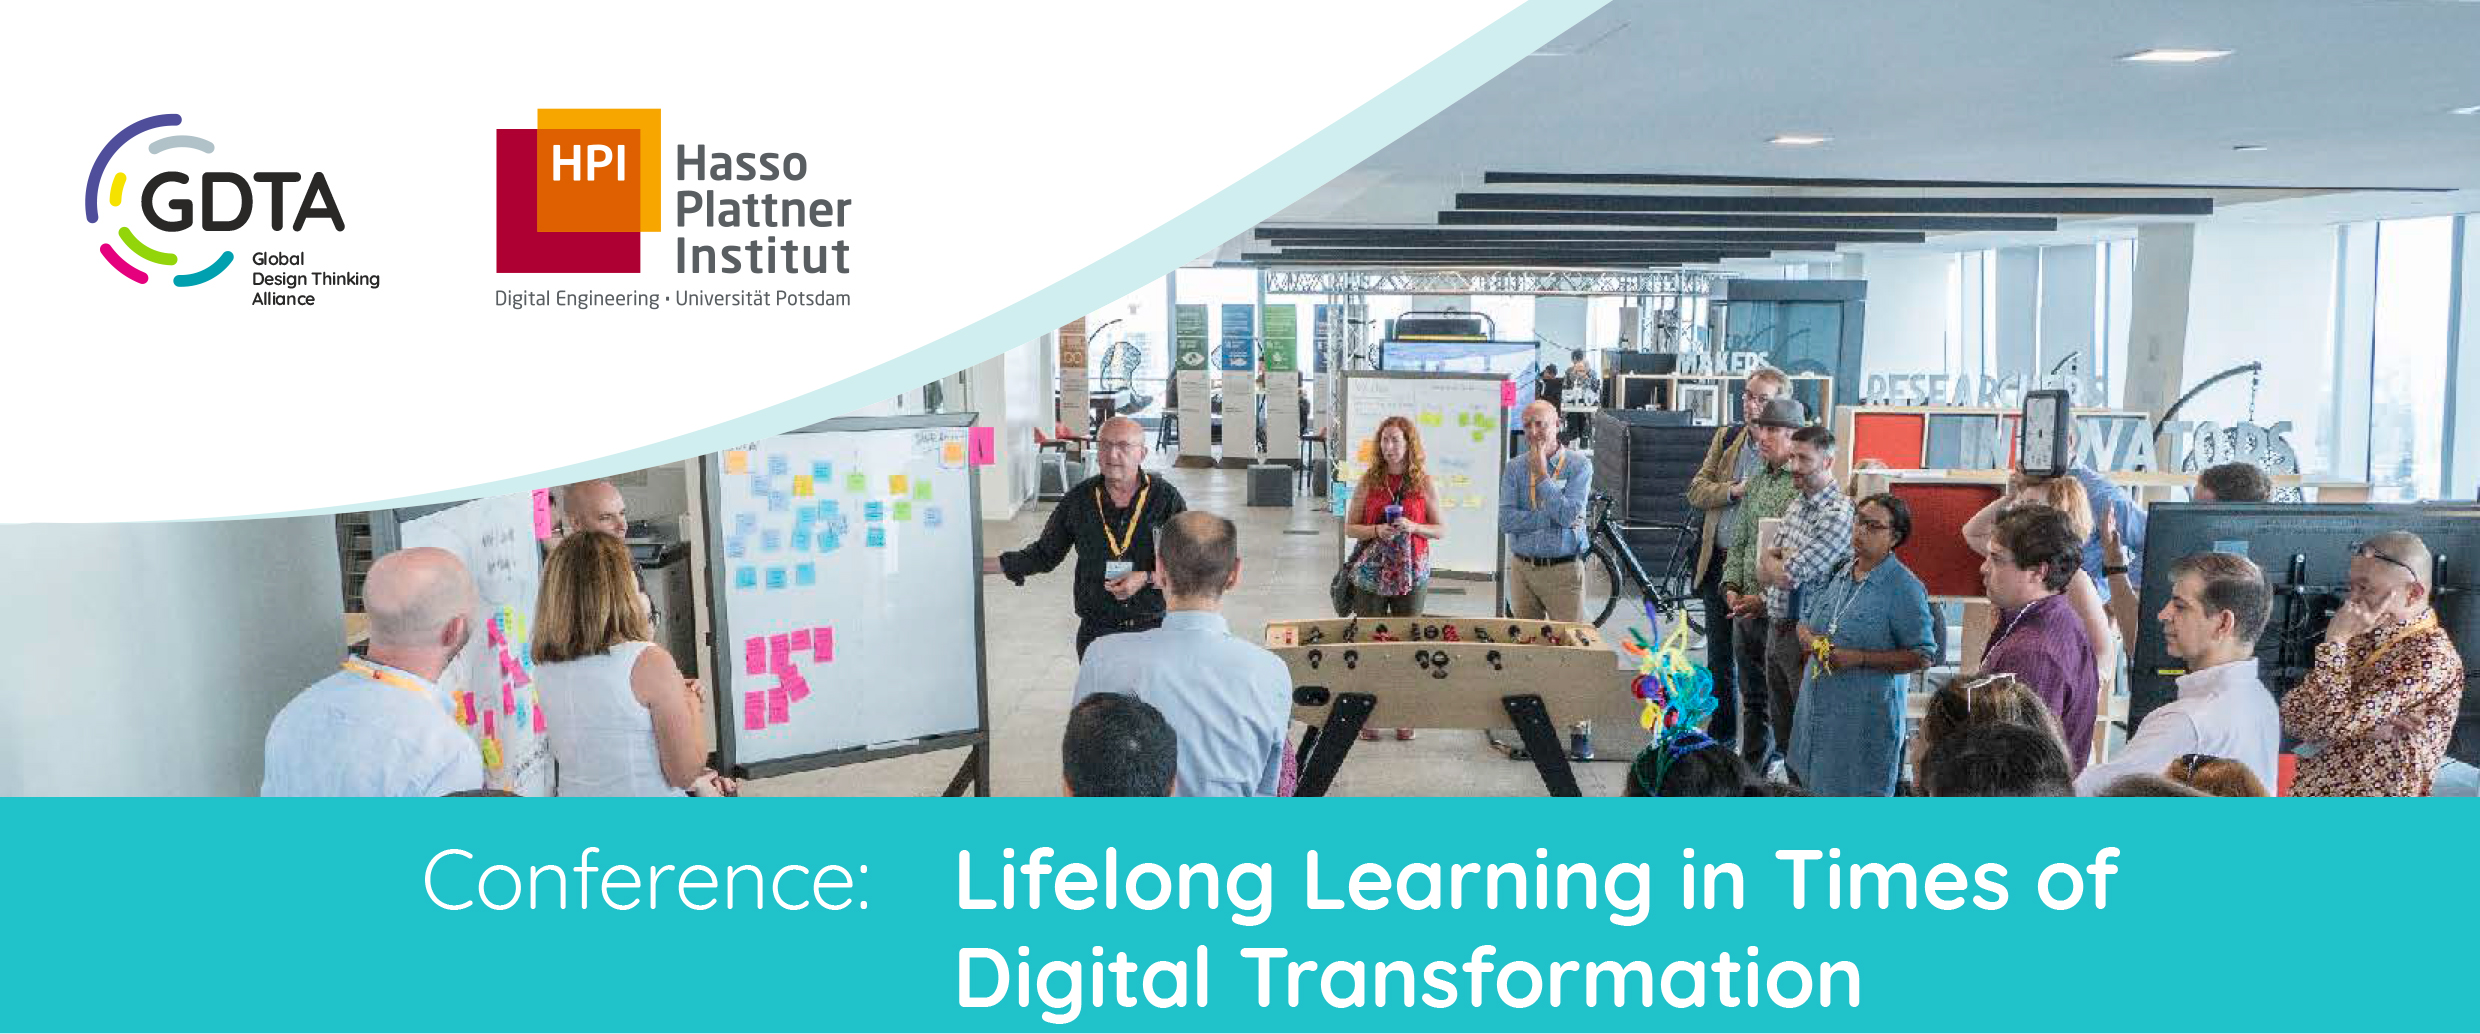 Lifelong learning conference